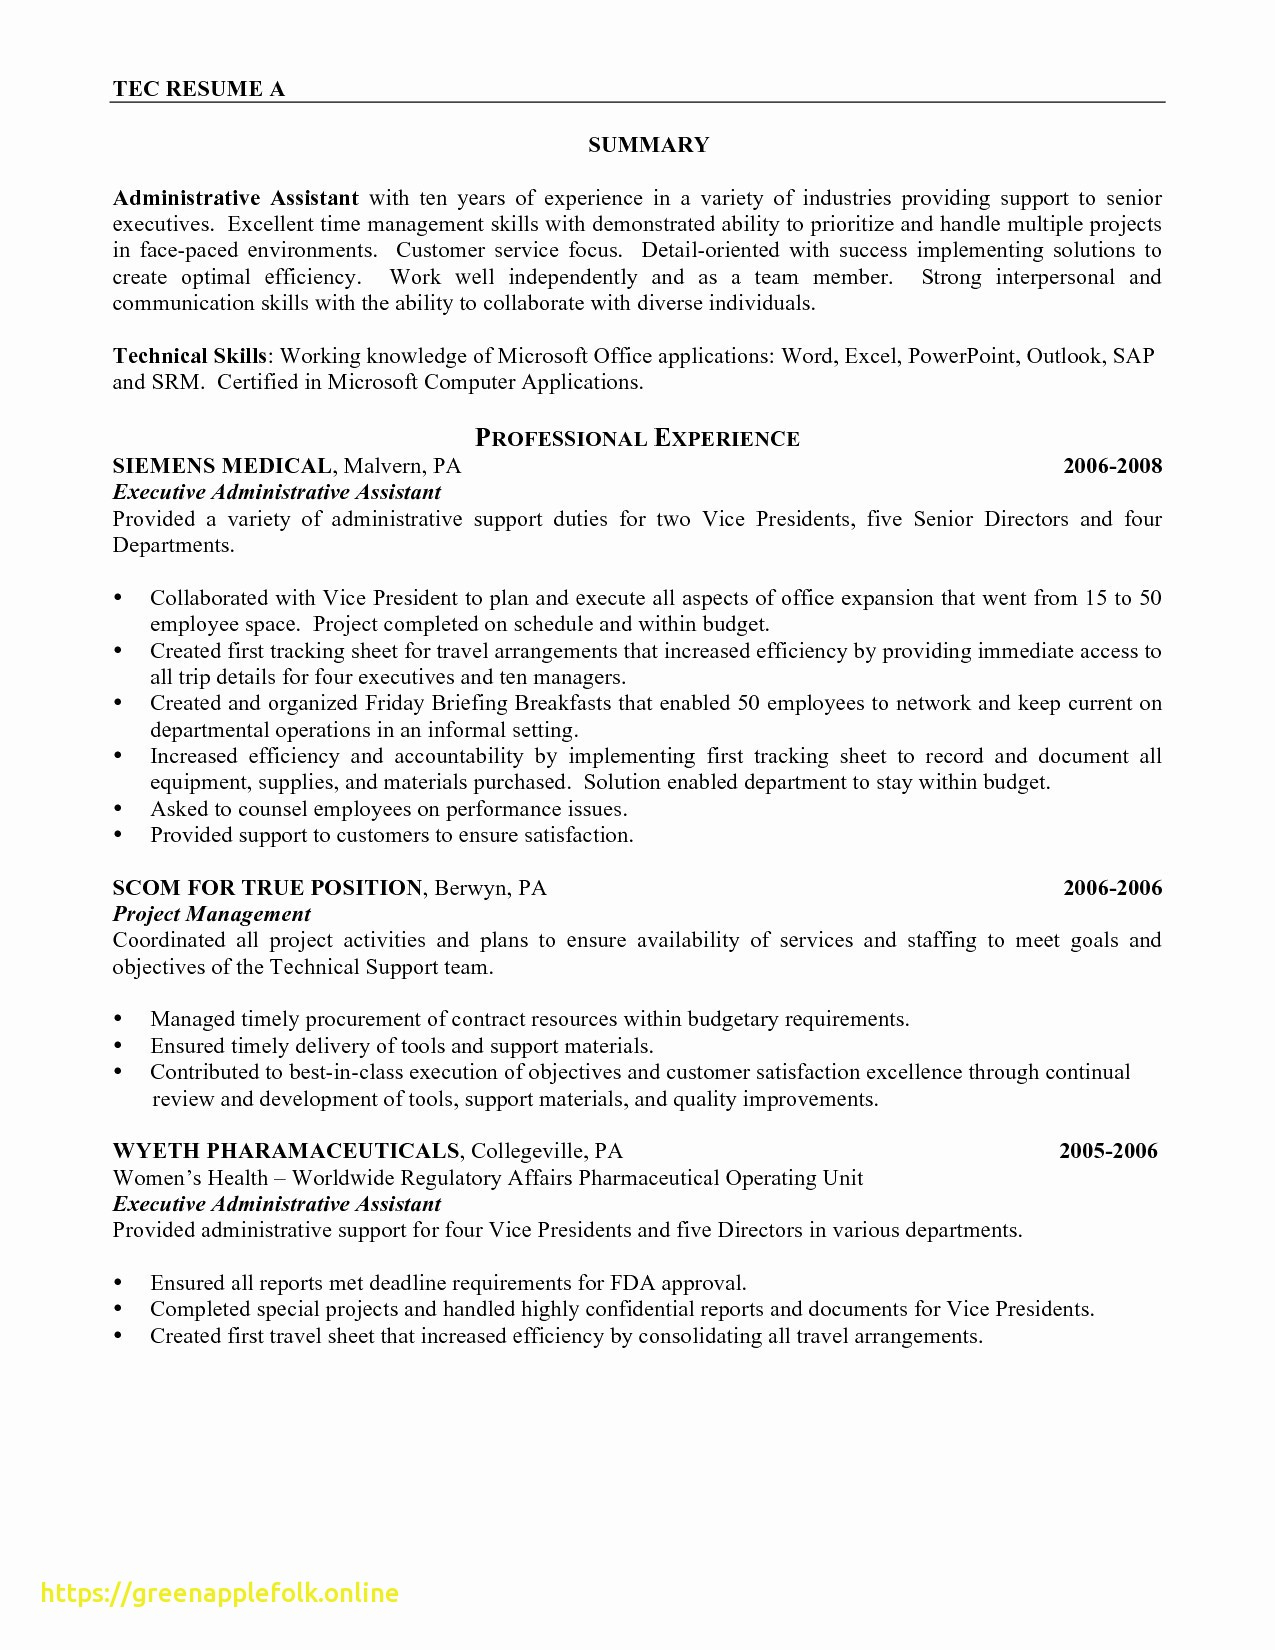 Service Industry Resume Sample - New What Industry is Graphic Design